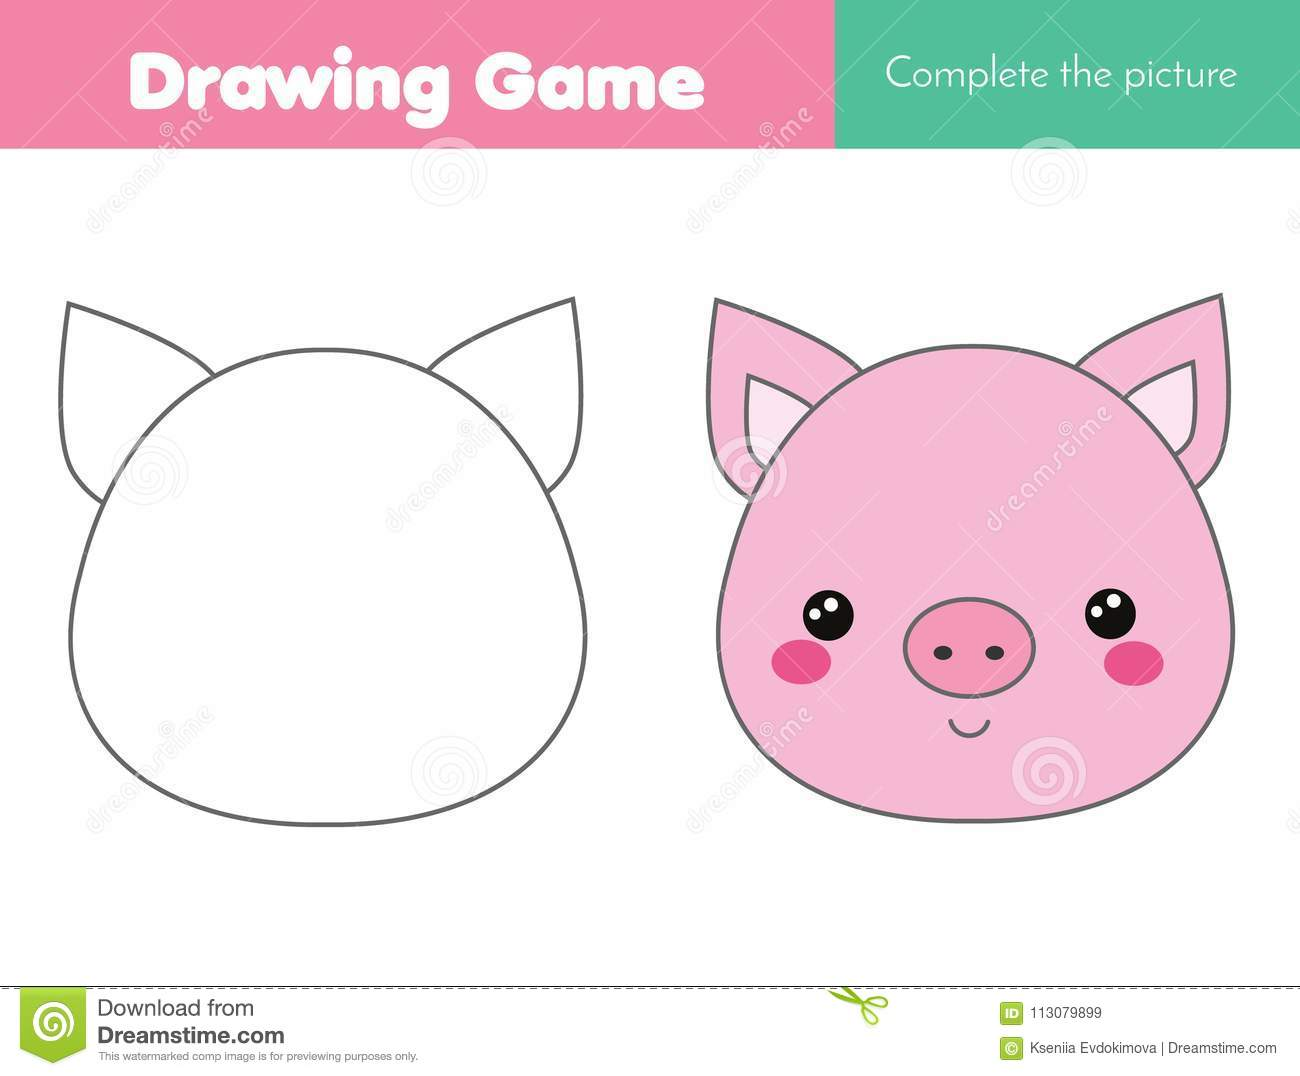 Children Educational Game Complete The Picture Coloring Page Kids Activity With Pig